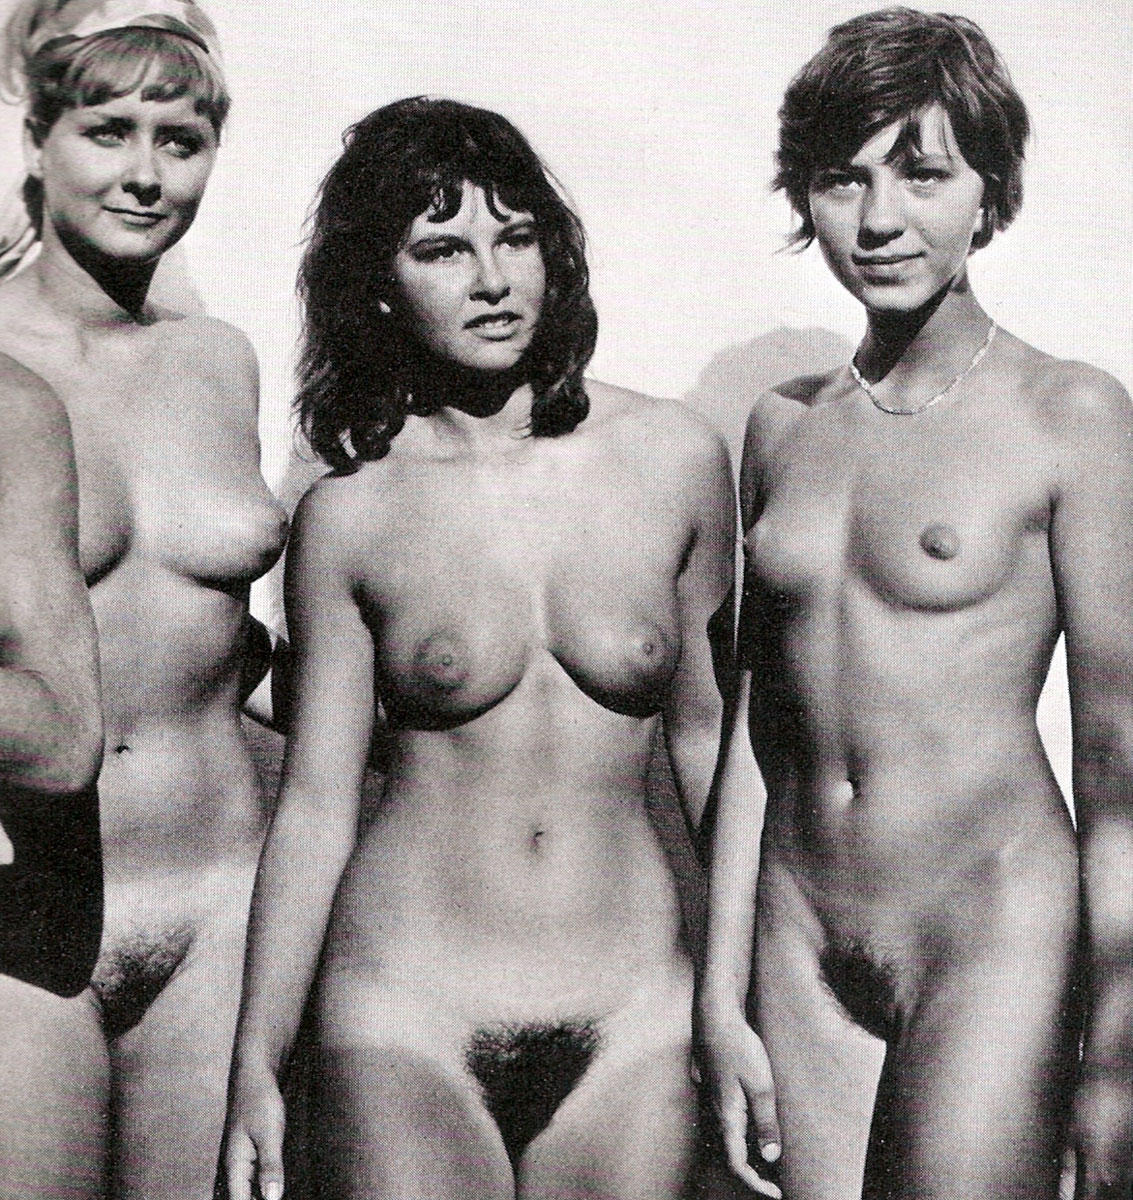 from Jude german women nude in black and white